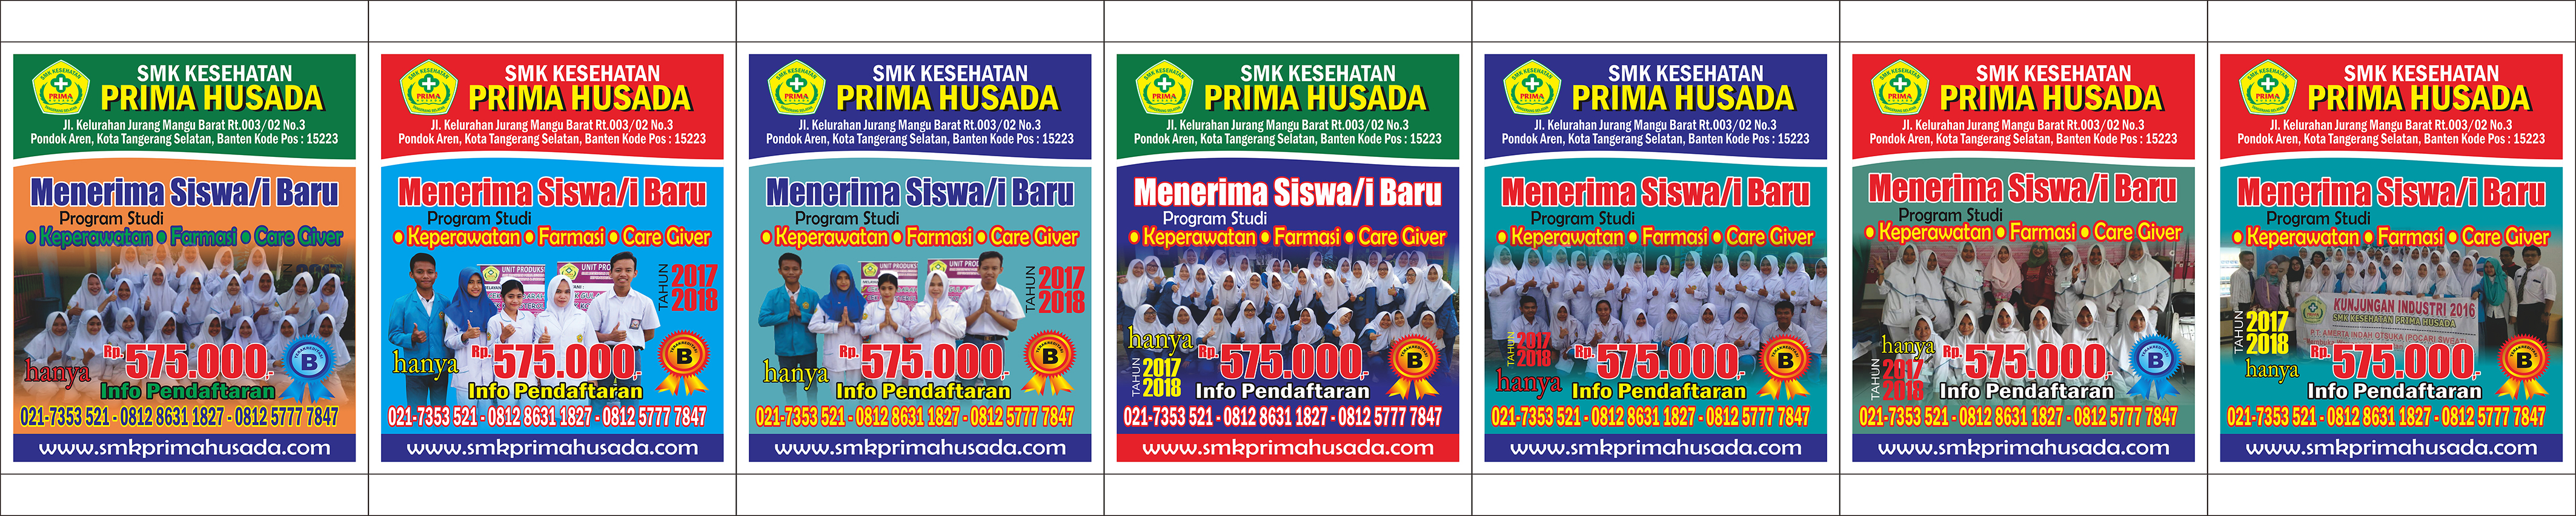 banner tiang primus